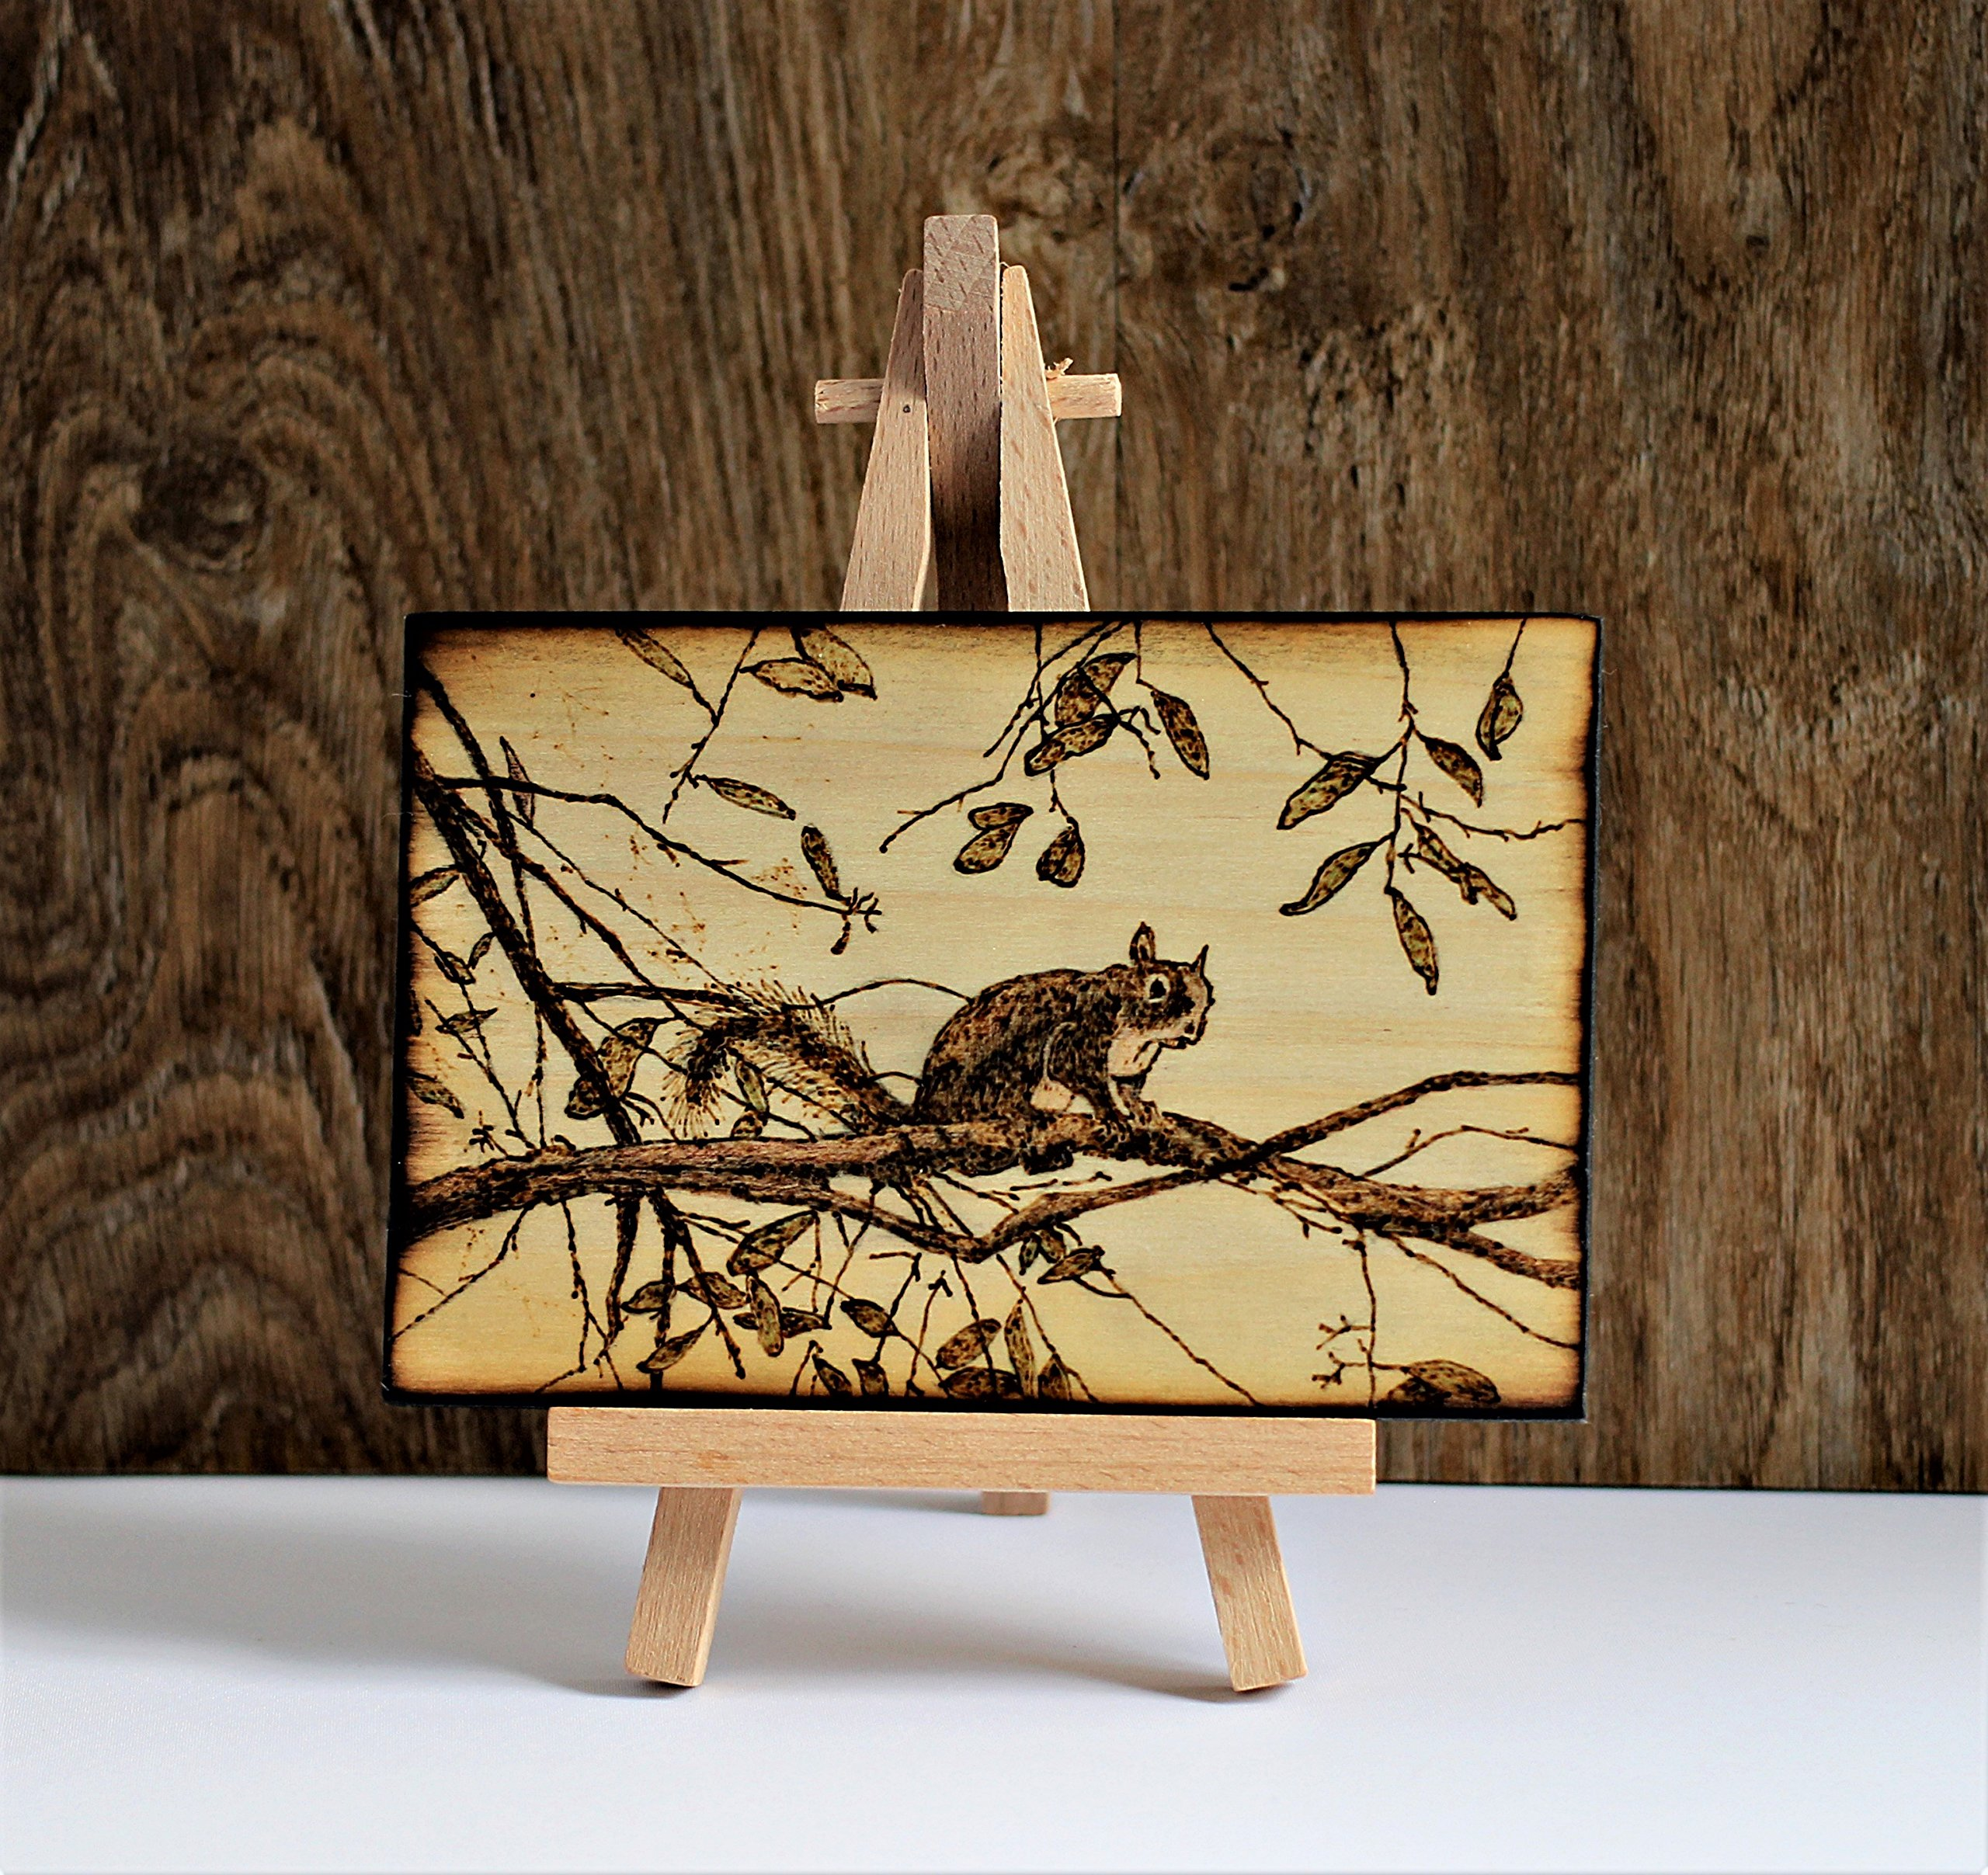 Wood Burned Gray Squirrel Pyrography Small Woodburned Nature Wildlife Picture Desktop Art